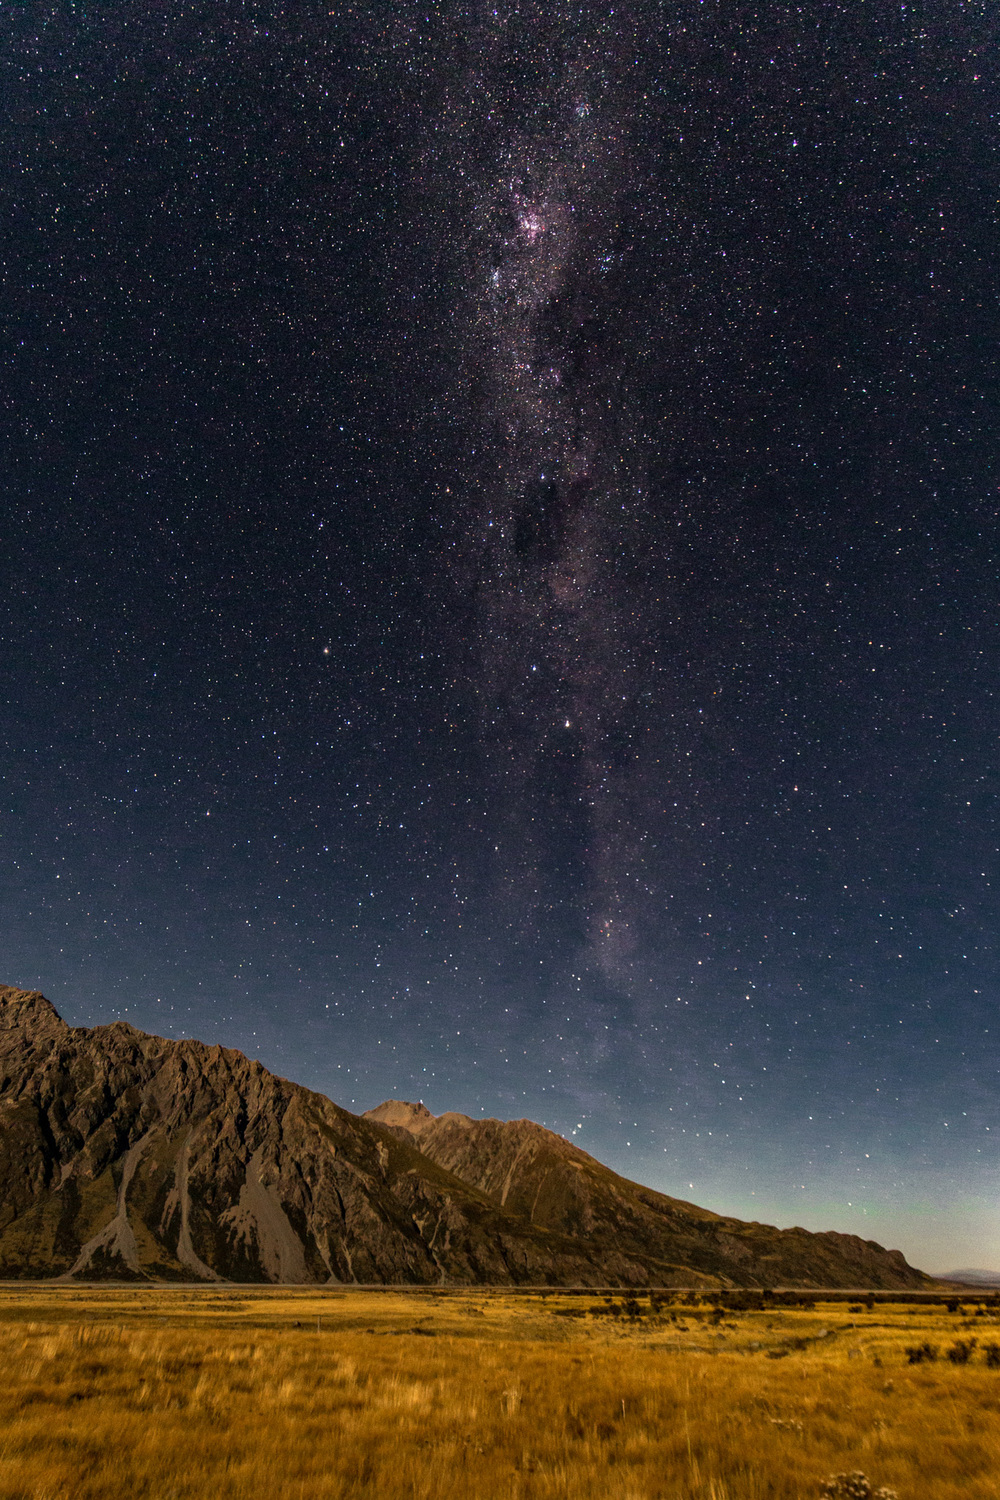 The Milky Way over the Tasman Valley / Aoraki/Mount Cook National Park